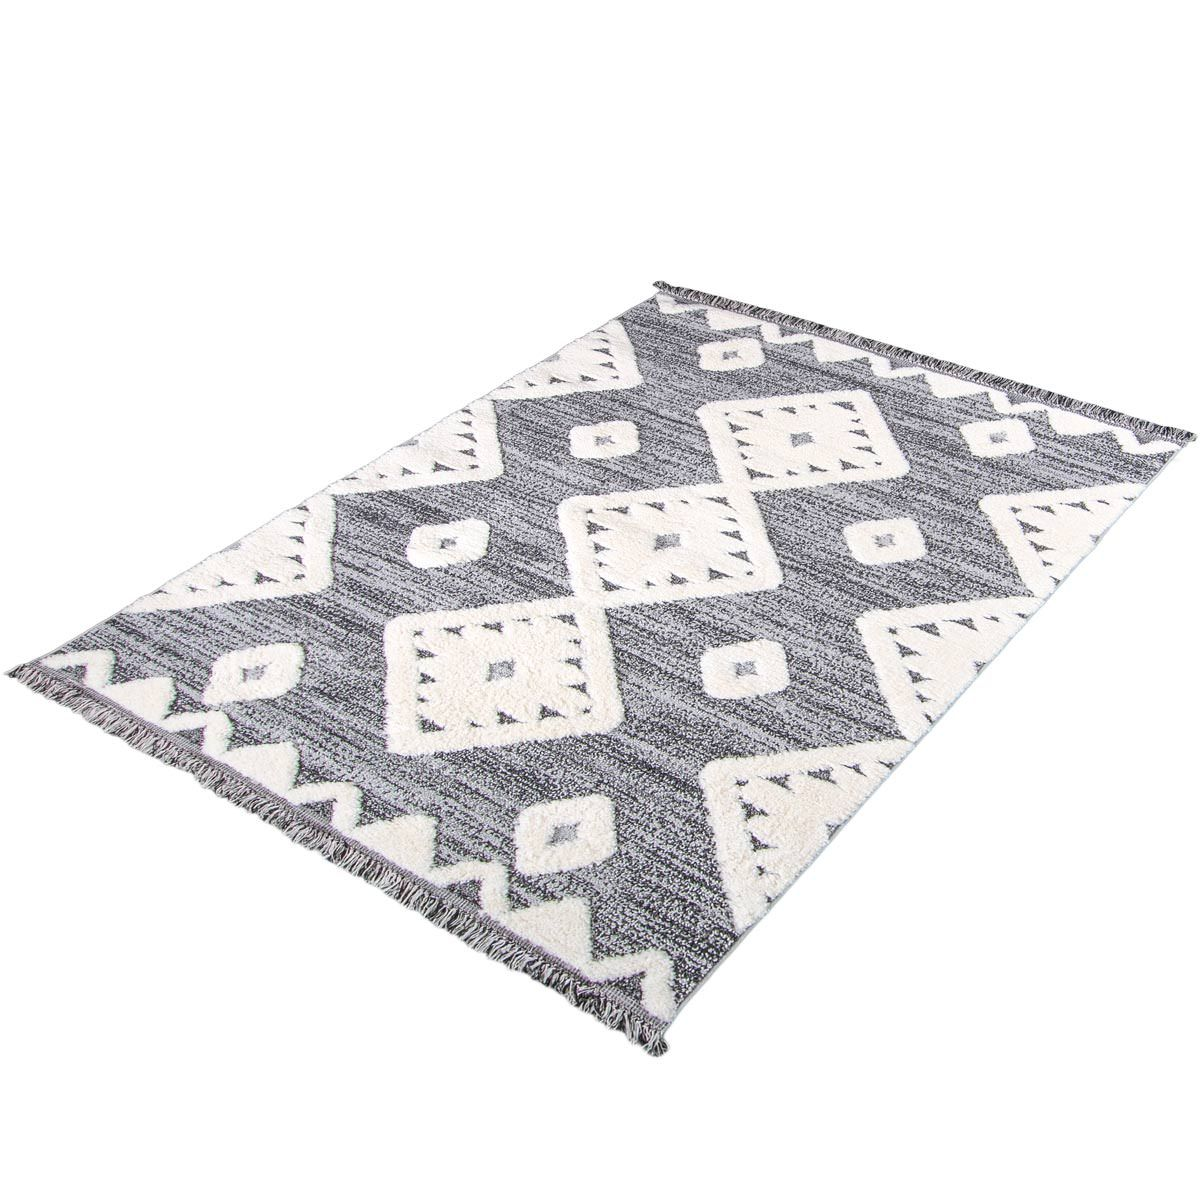 Atlas Rug 07 Grey - Fringes 9